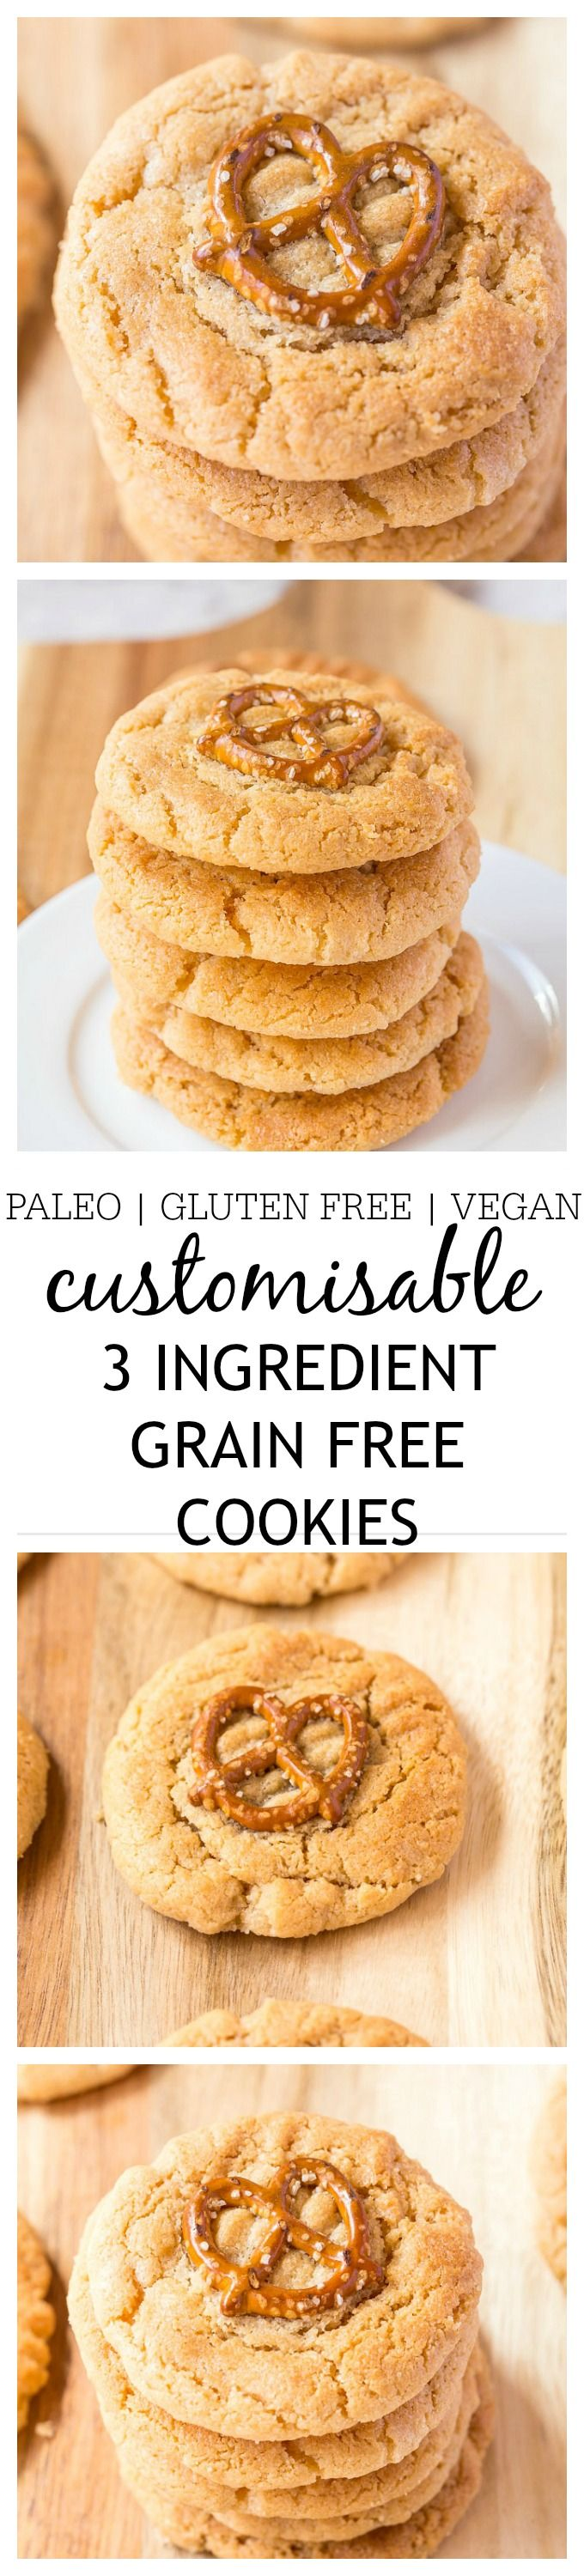 Customisable 3 ingredient flourless cookies which just require 1 bowl and 10 minutes- So easy, delicious and a hit amongst all! {paleo, gluten free, vegan}